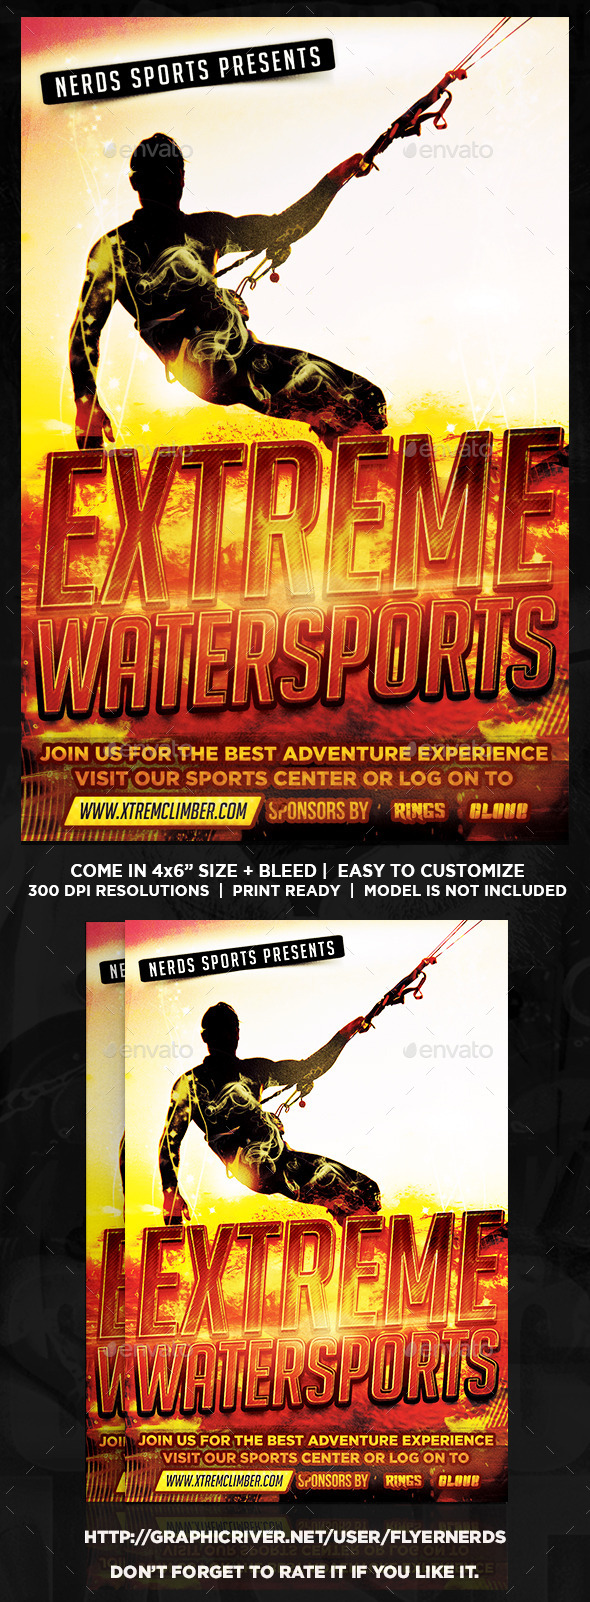 GraphicRiver Extreme Watersports Flyer 10110554